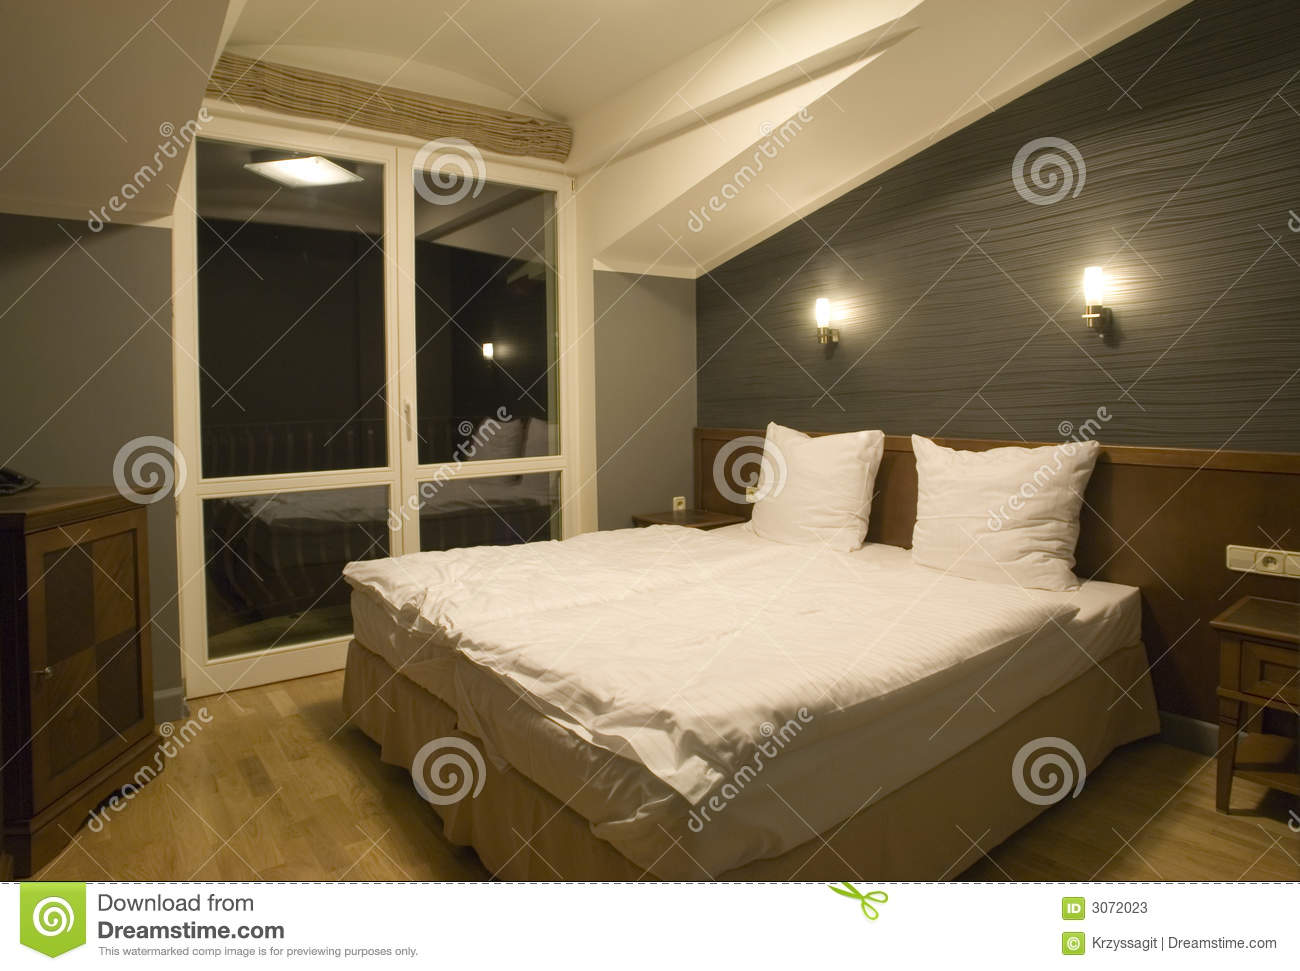 Simple Bedroom Stock Image Of Basic Indoors